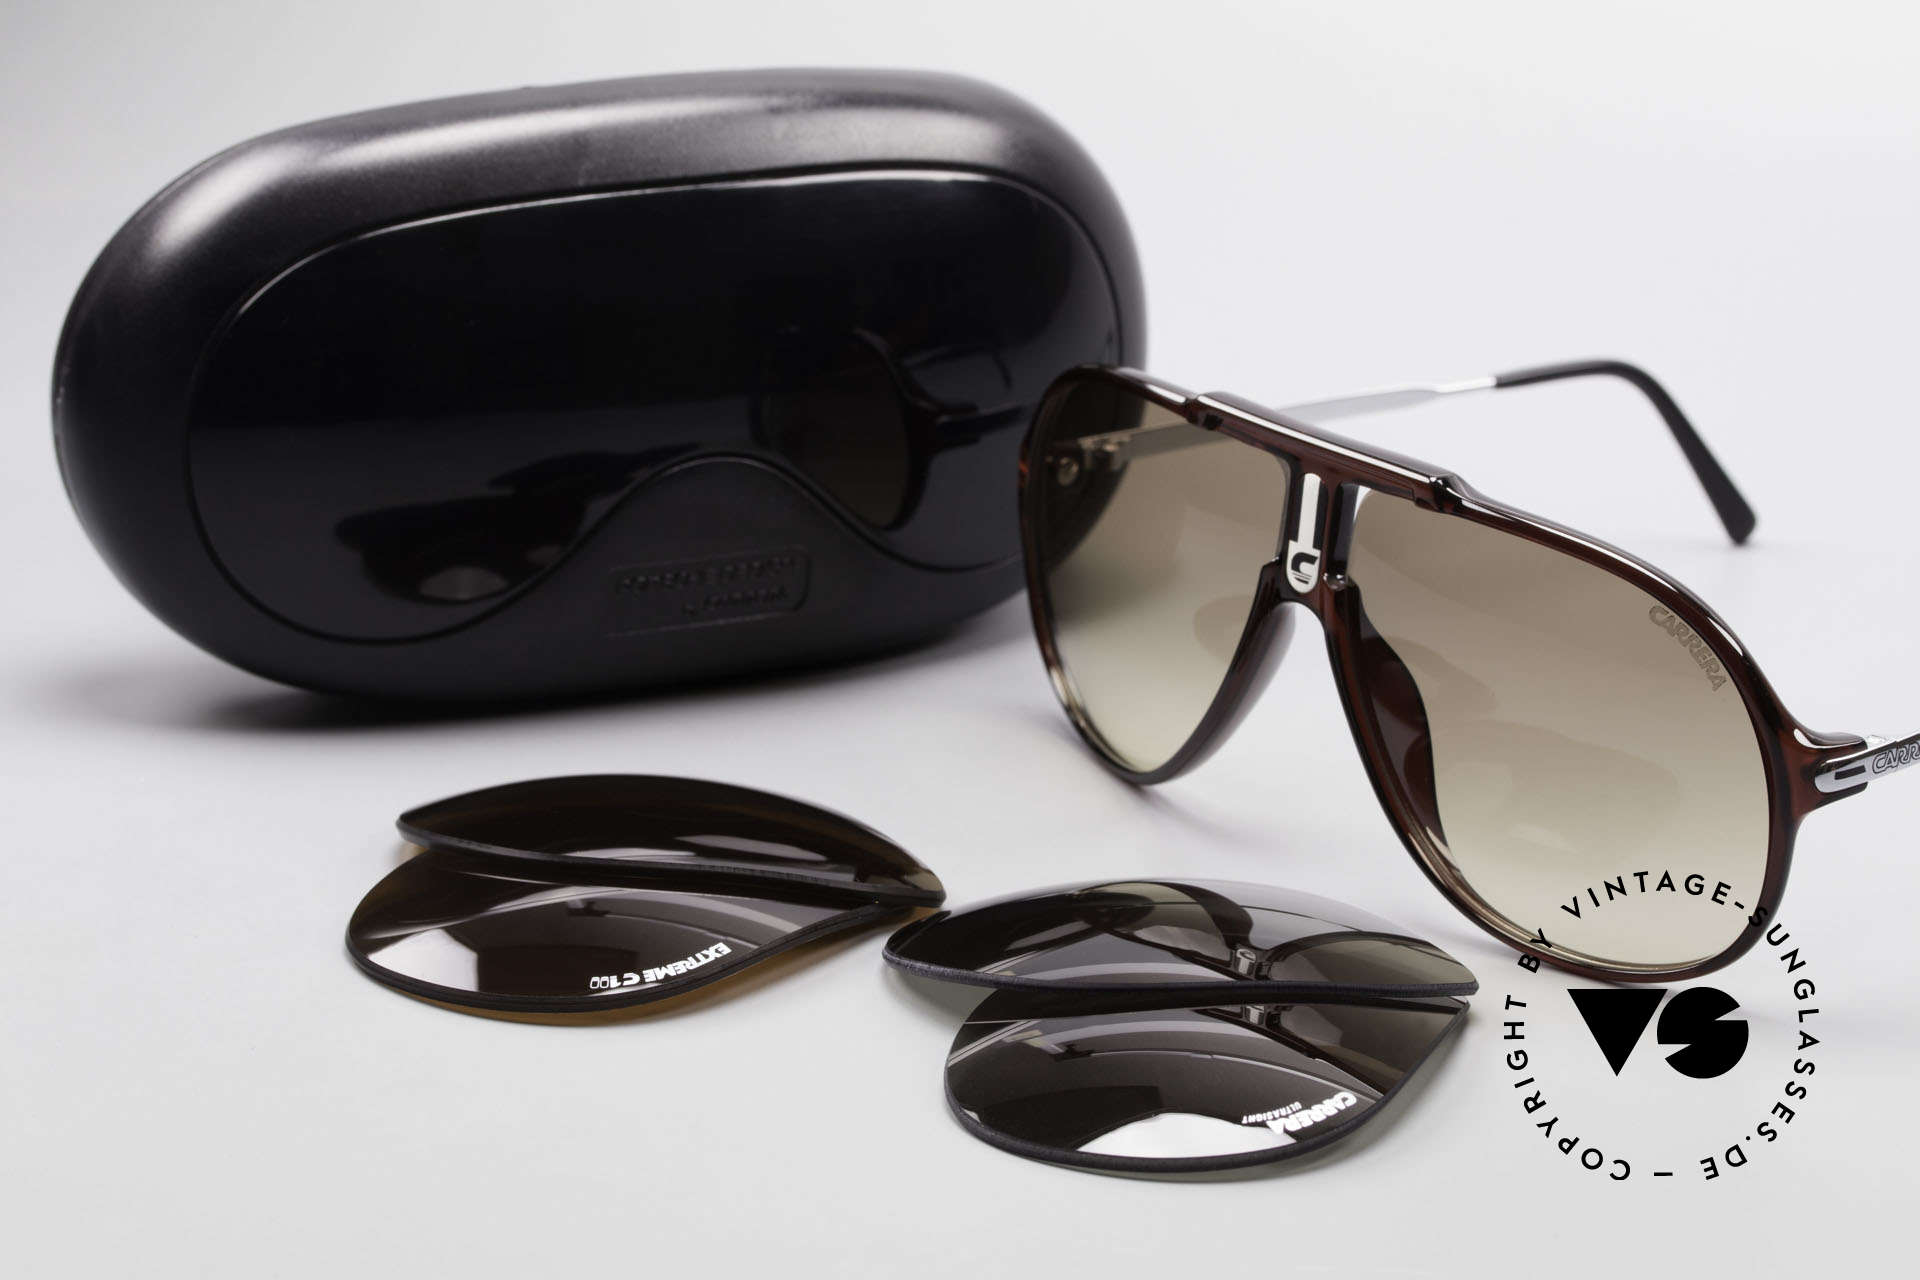 Carrera 5590 3 Sets Interchangeable Lenses, NO RETRO SHADES, but an app. 30 years old ORIGINAL!, Made for Men